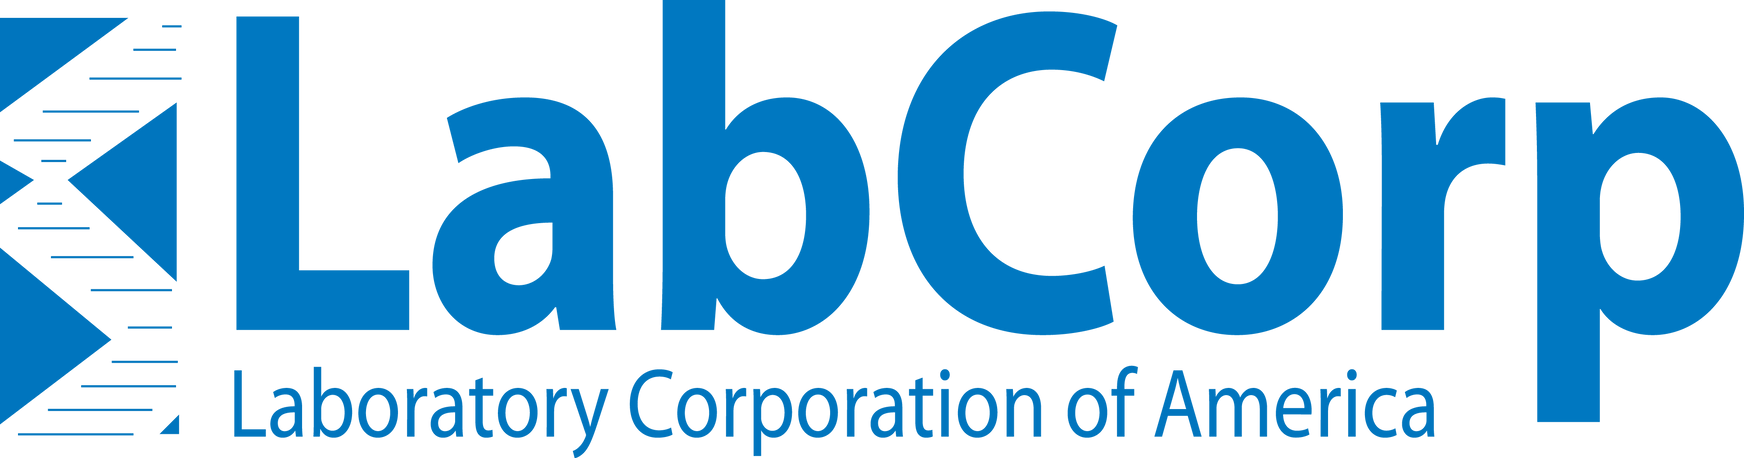 Mylabcorp is an employee portal for labcorp employees and can be accessed at wwwmylabcorpcom